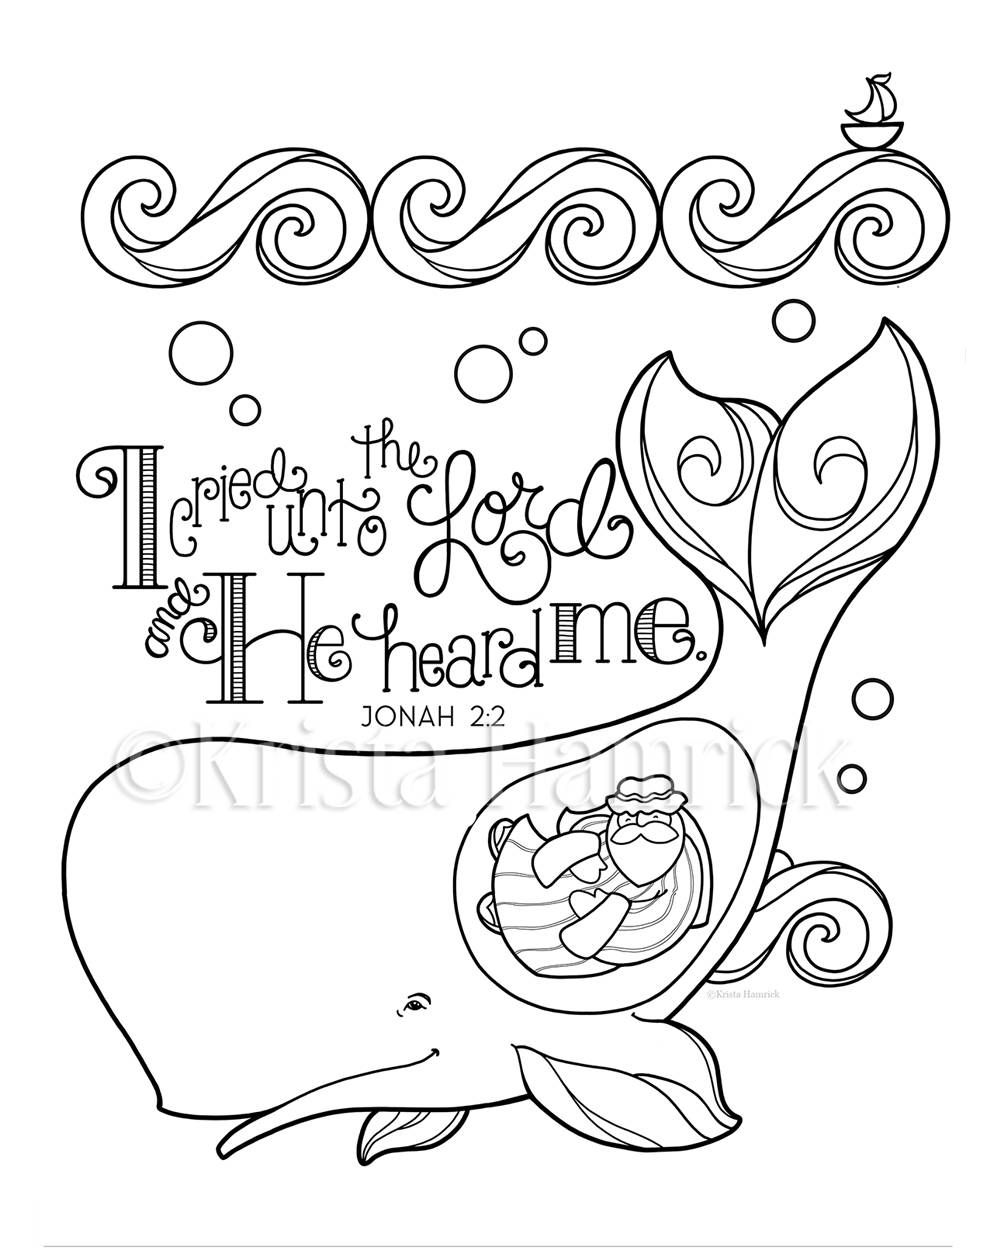 Jonah And The Whale Coloring Page 85X11 Bible Journaling Tip In 6X8 By